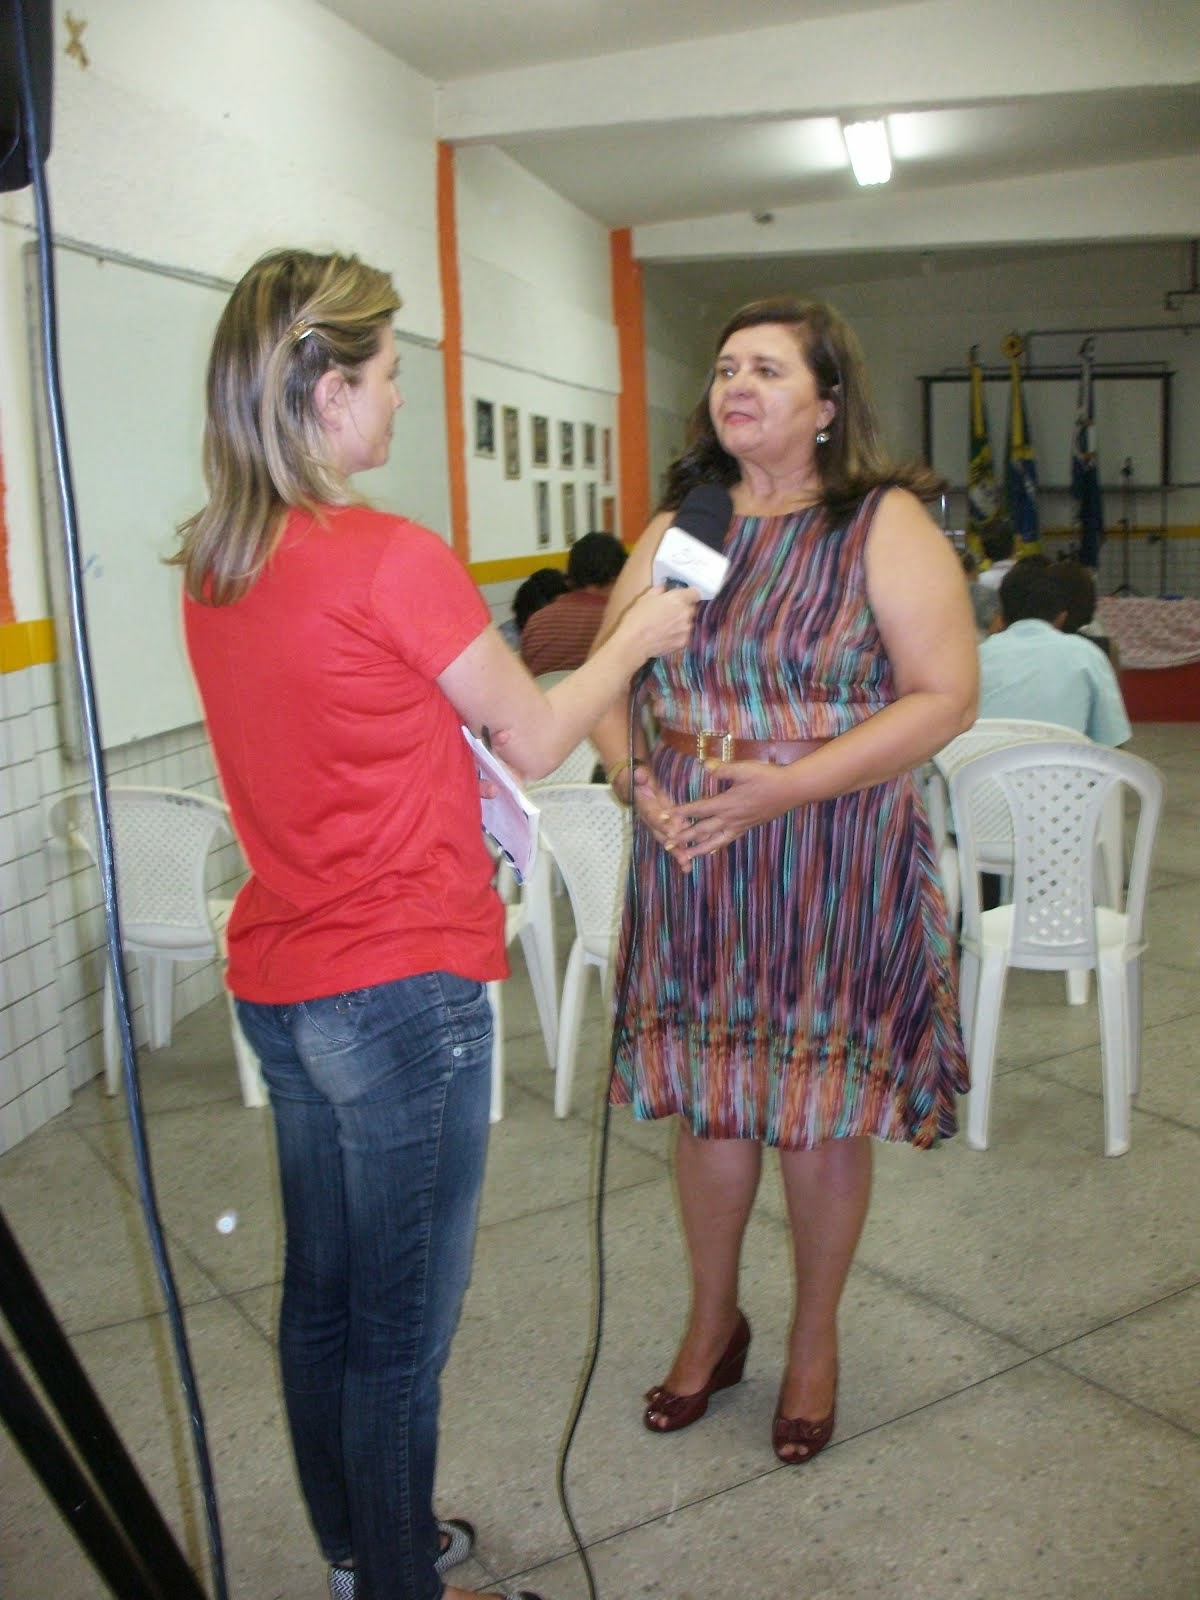 entrevista sobre o currículo do EMND